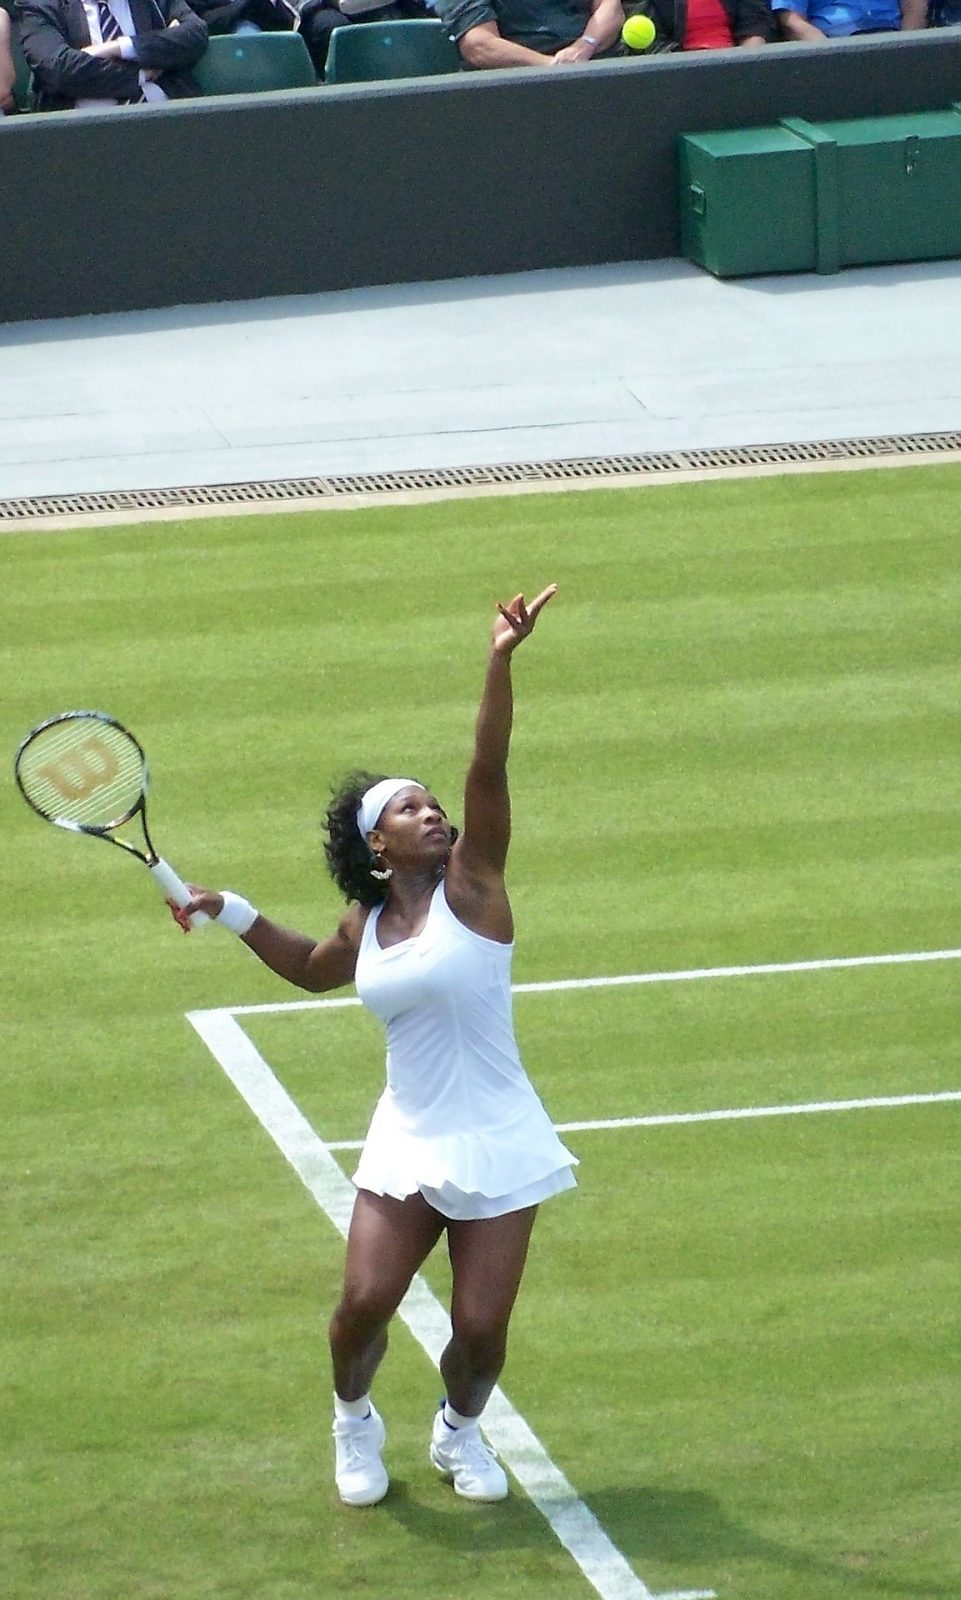 Fast Serve Serena